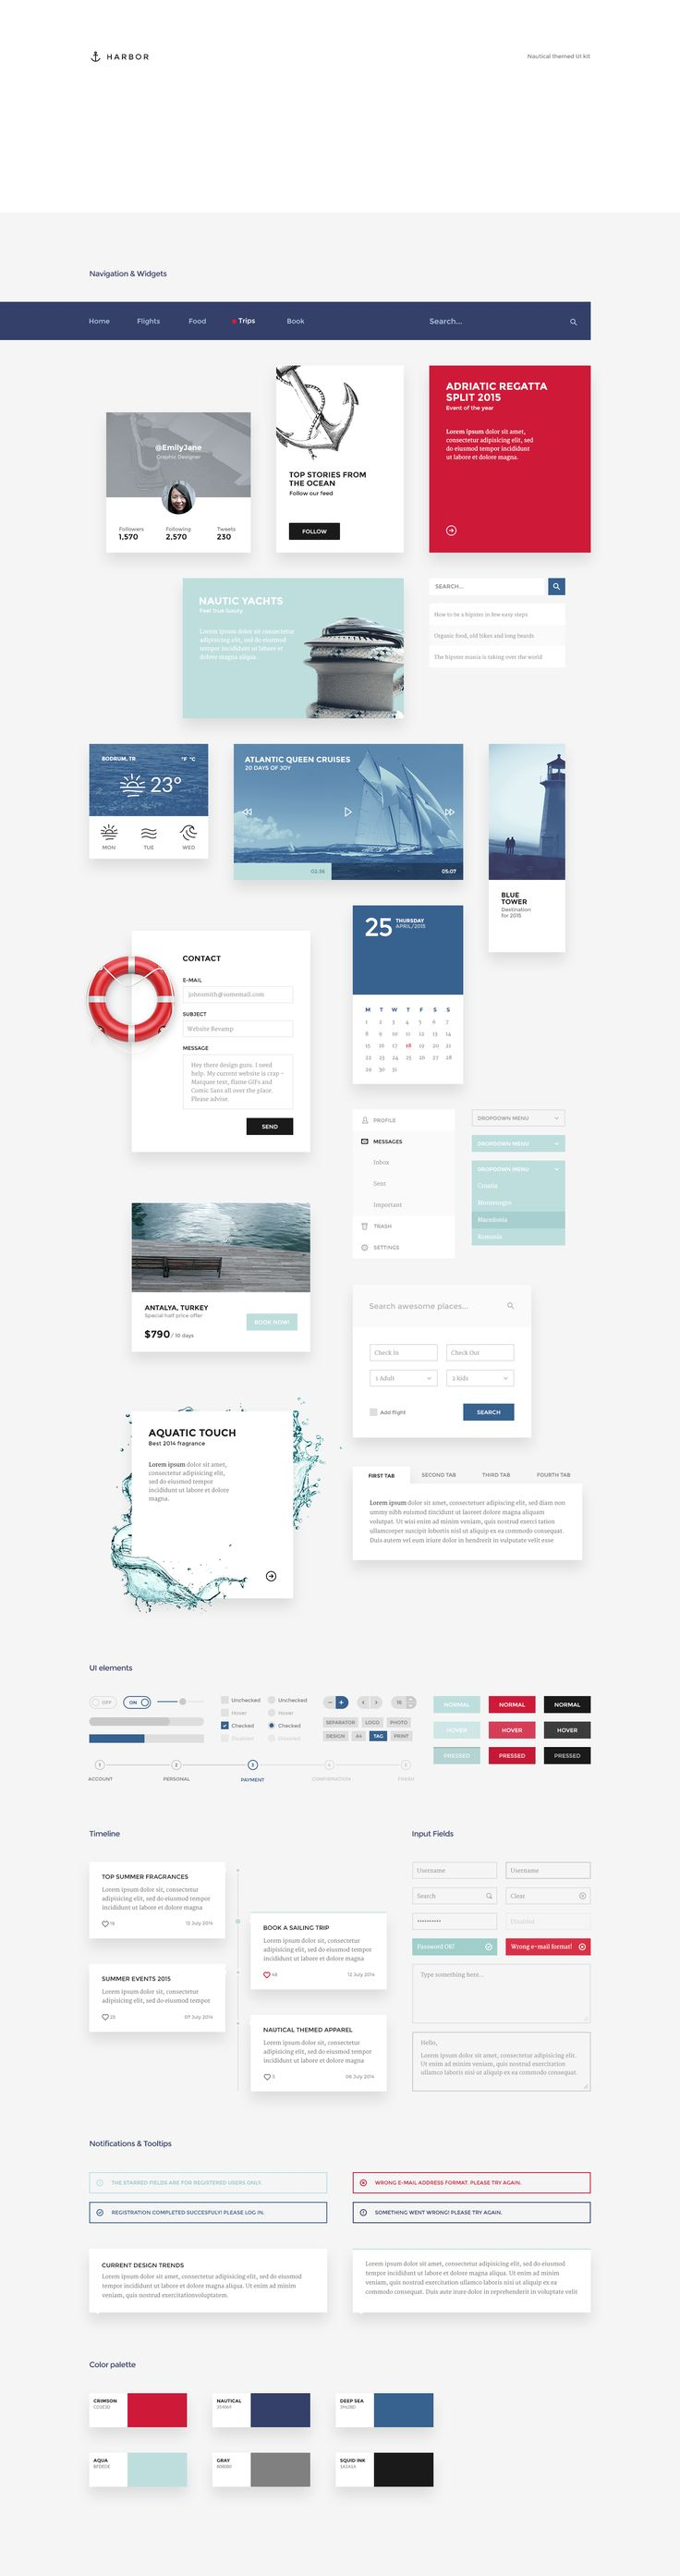 Dribbble - harbor-ui-kit-all-elements-preview.png by Erigon